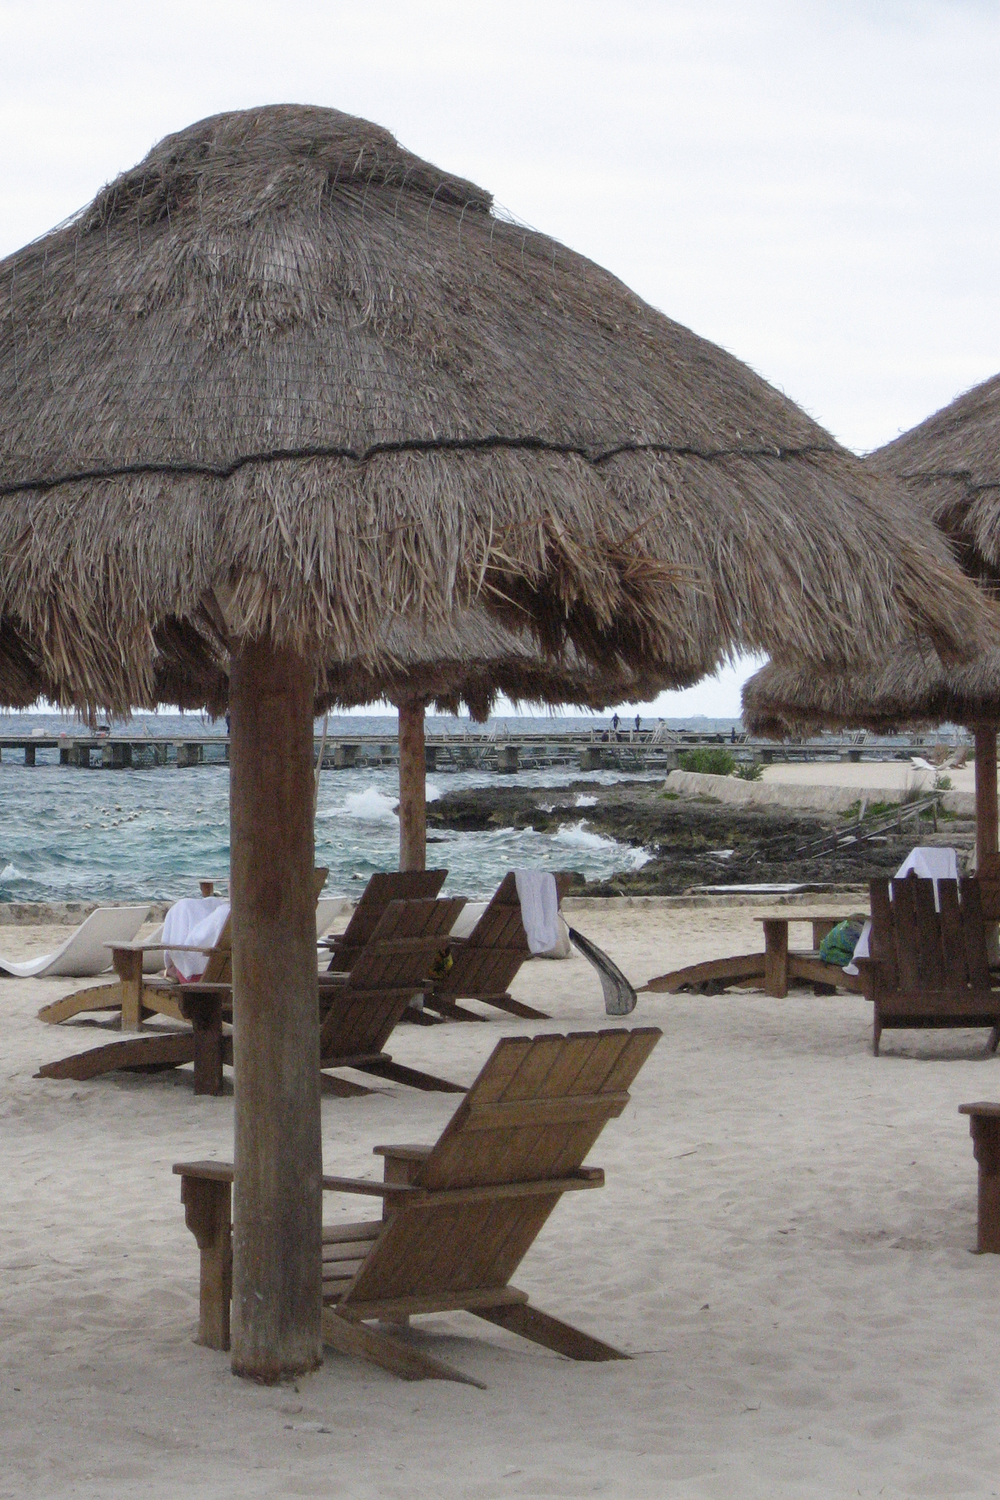 Enjoy the beaches of Cancun, Mexico! Visit EnjoyVacationing.com to learn more!